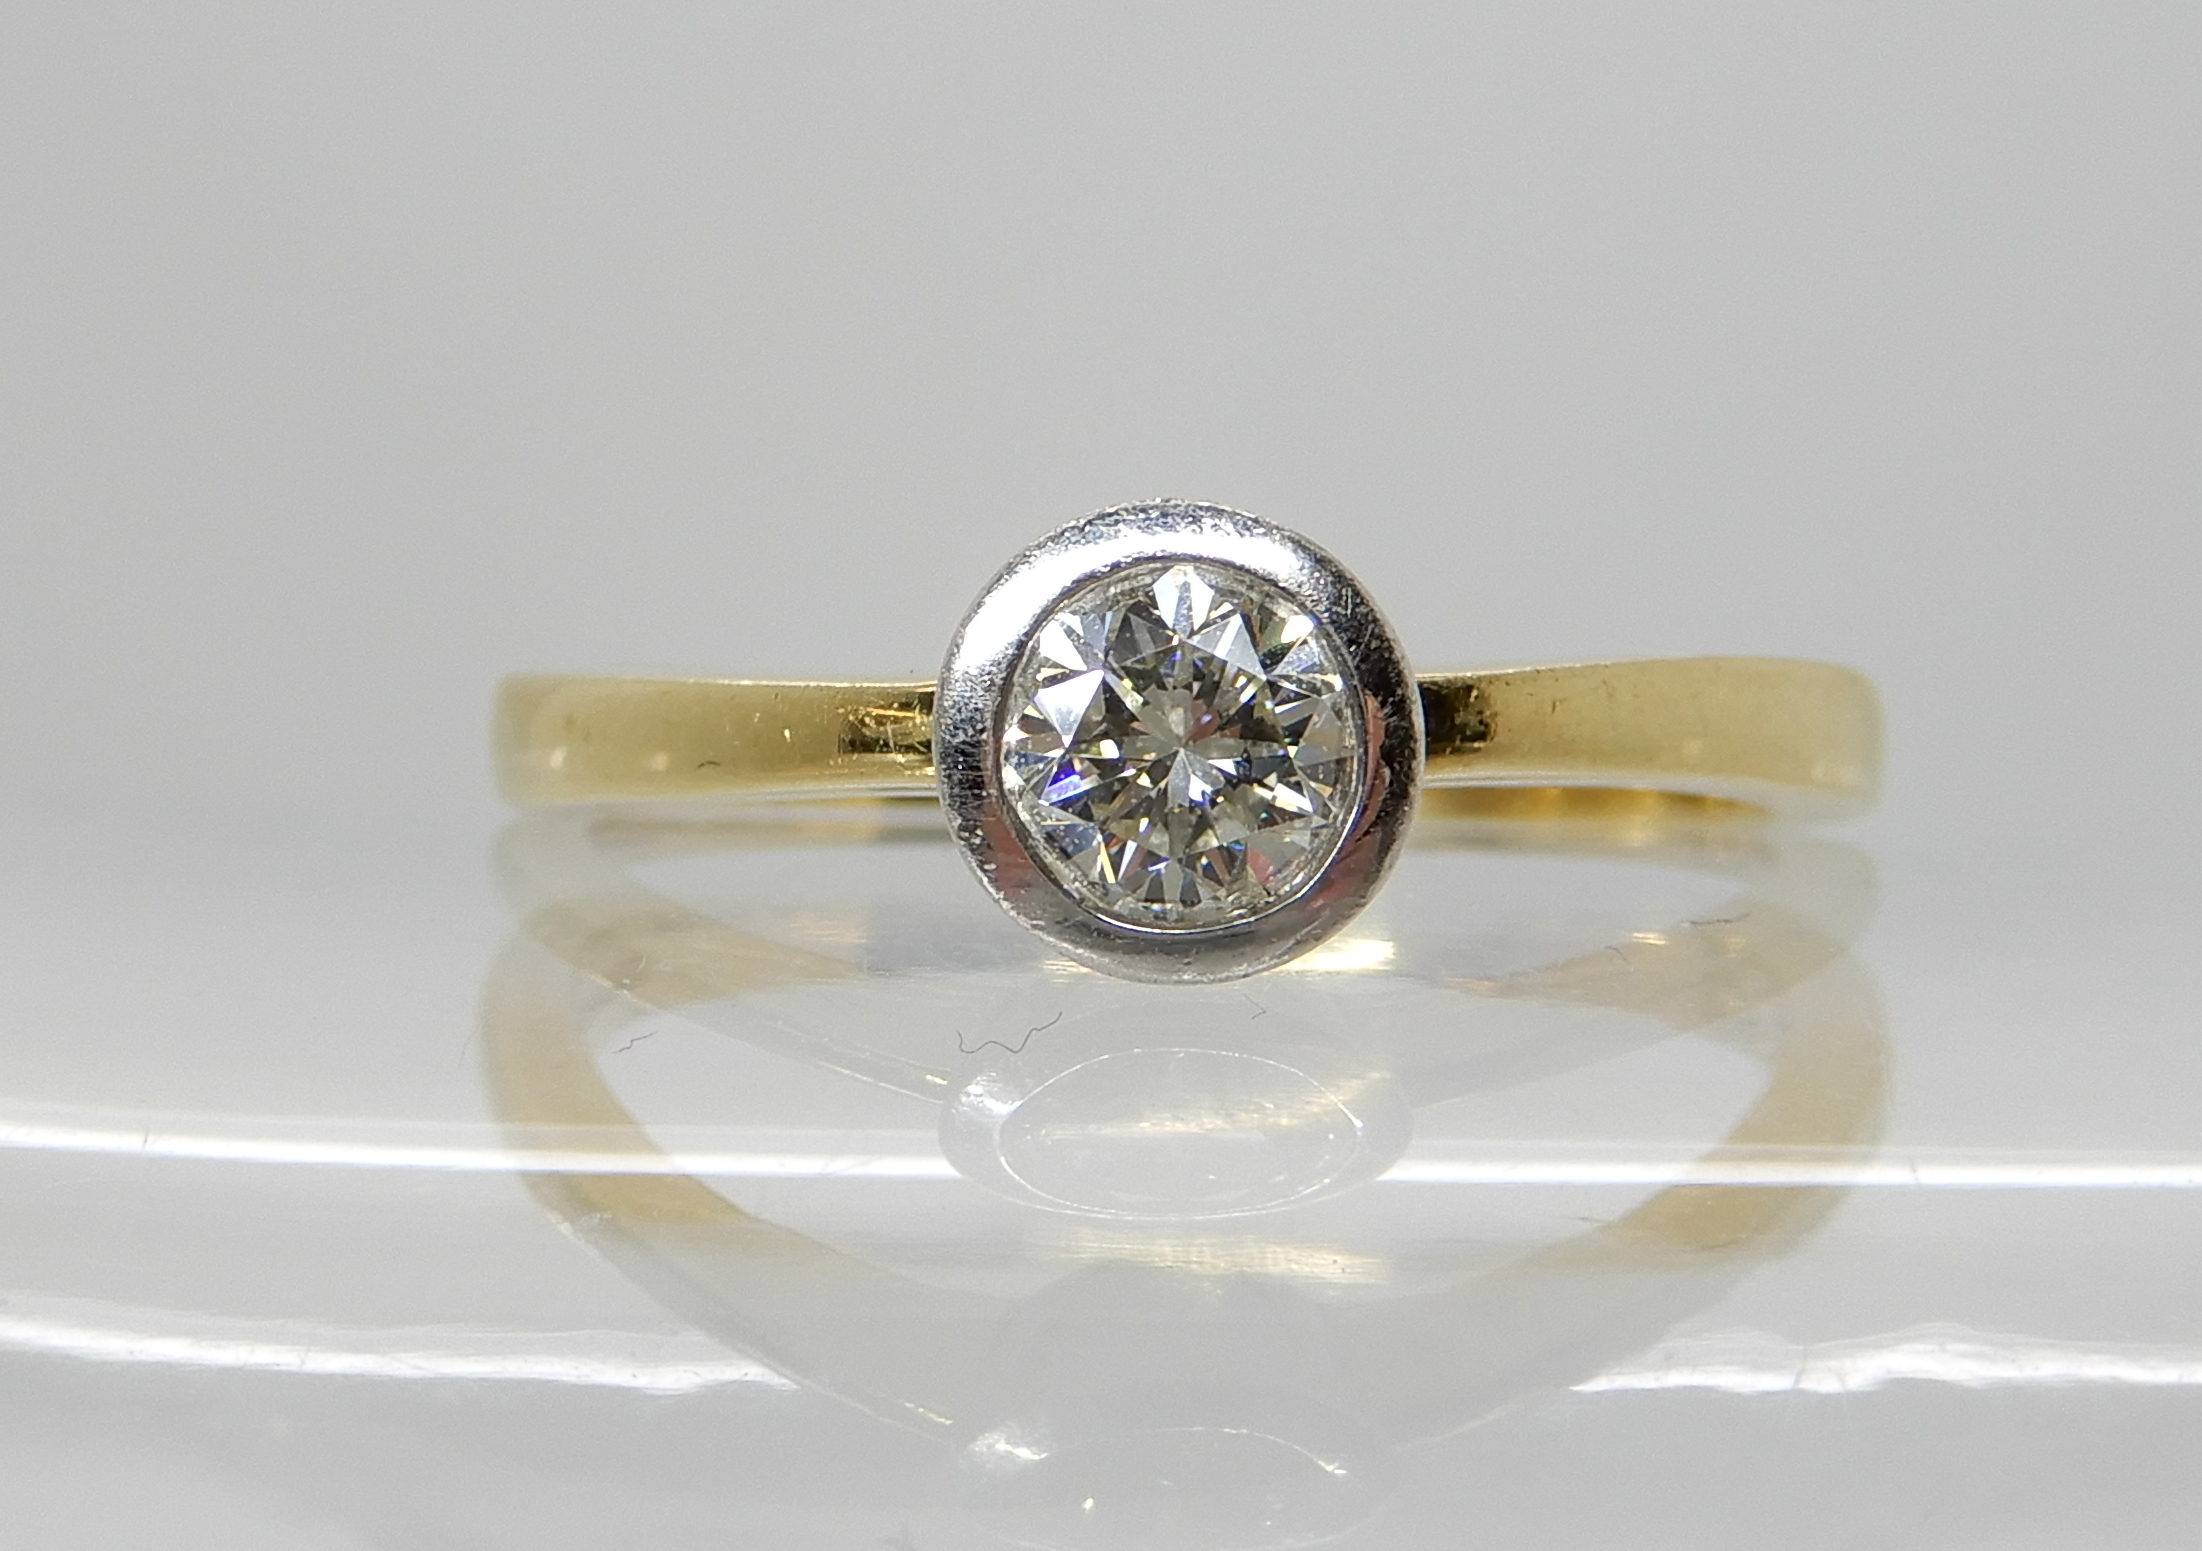 Lot 42 - An 18ct yellow gold diamond solitaire ring with an estimated approx 0.40ct diamond in a white gold